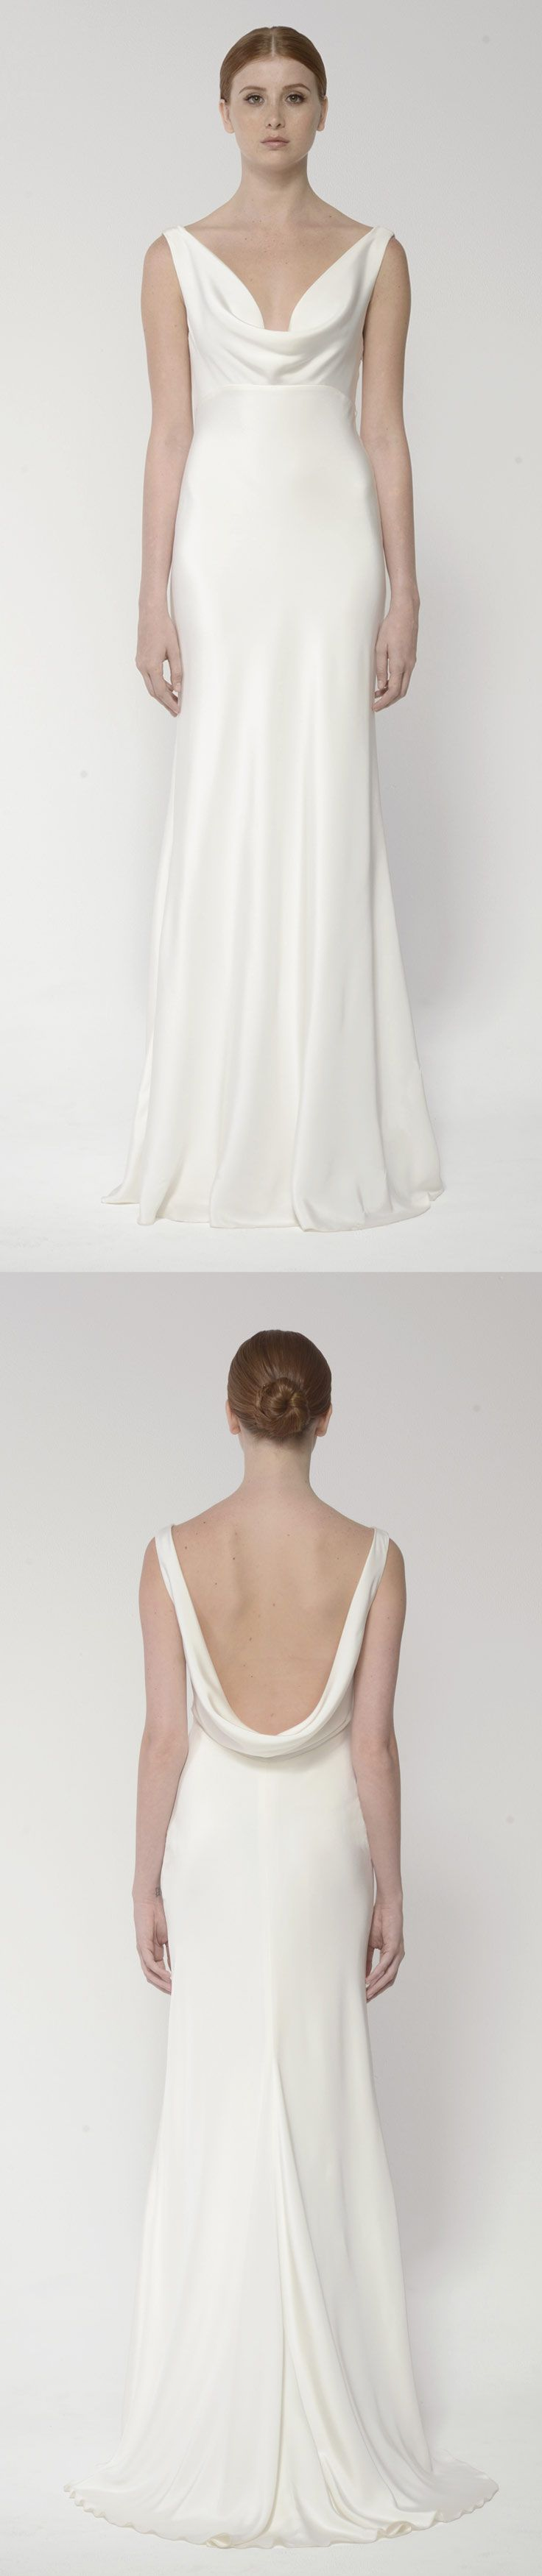 Silk gown with cowl neck and low scoop back, by Bliss Monique Lhuillier